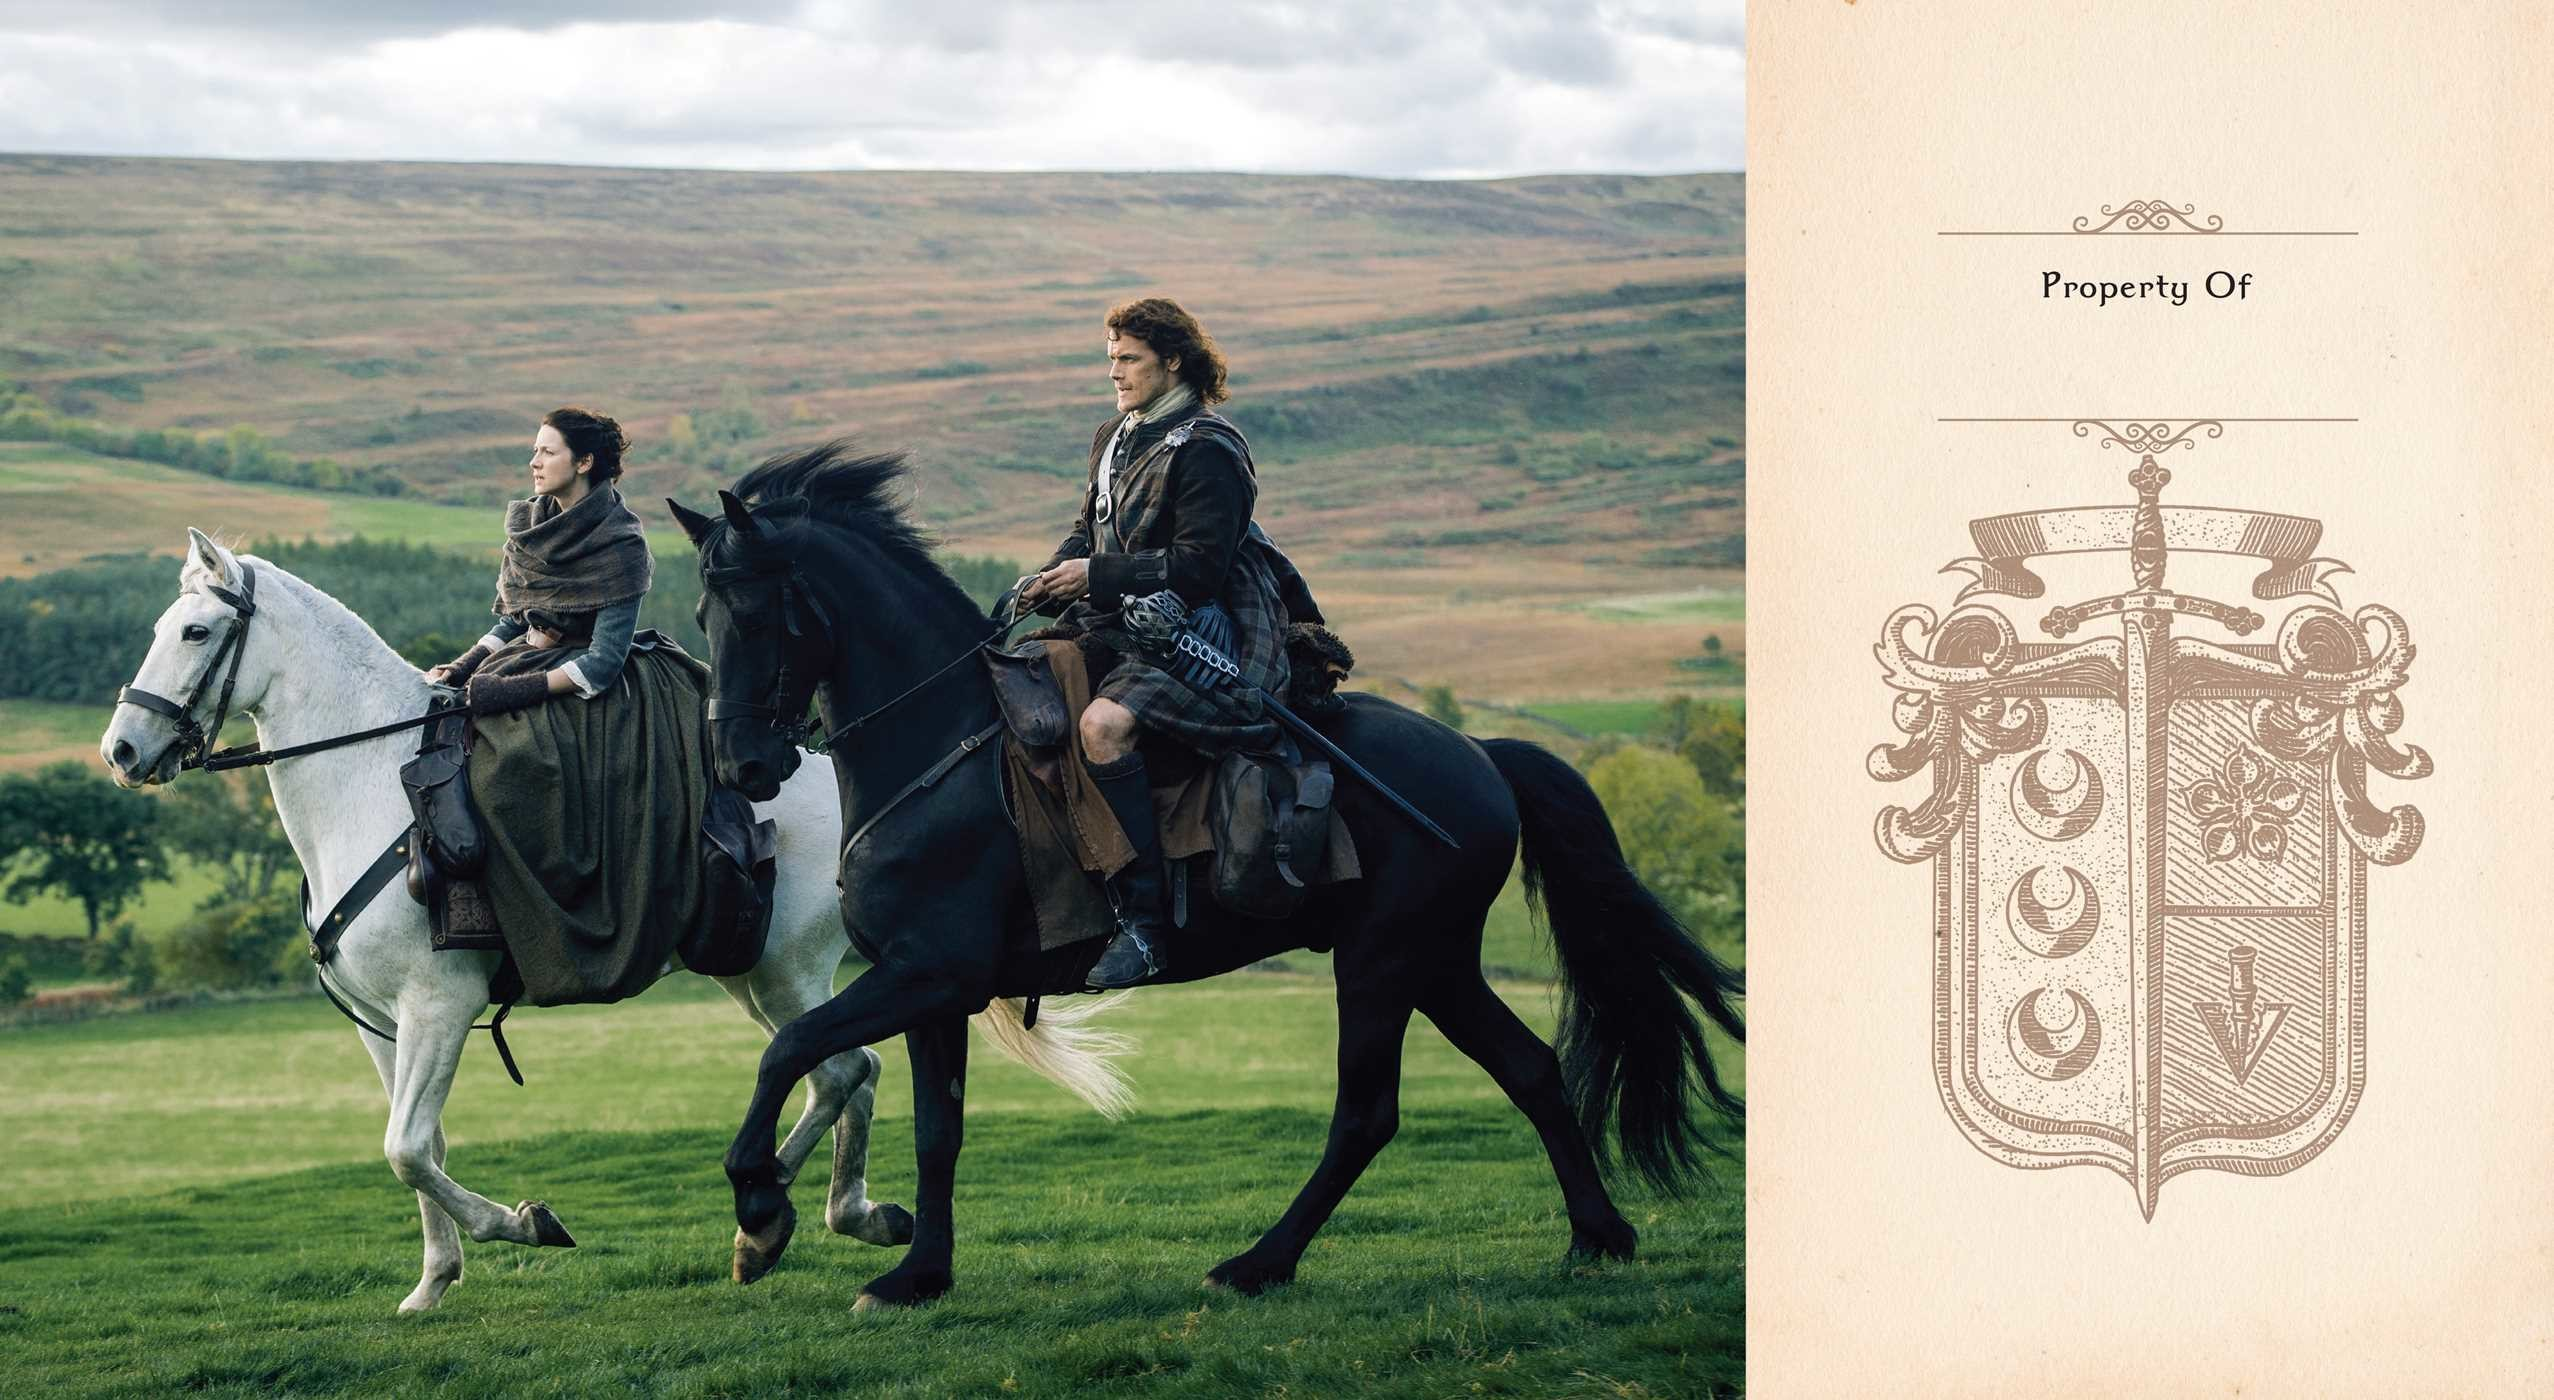 Outlander hardcover ruled journal 9781683831556.in01